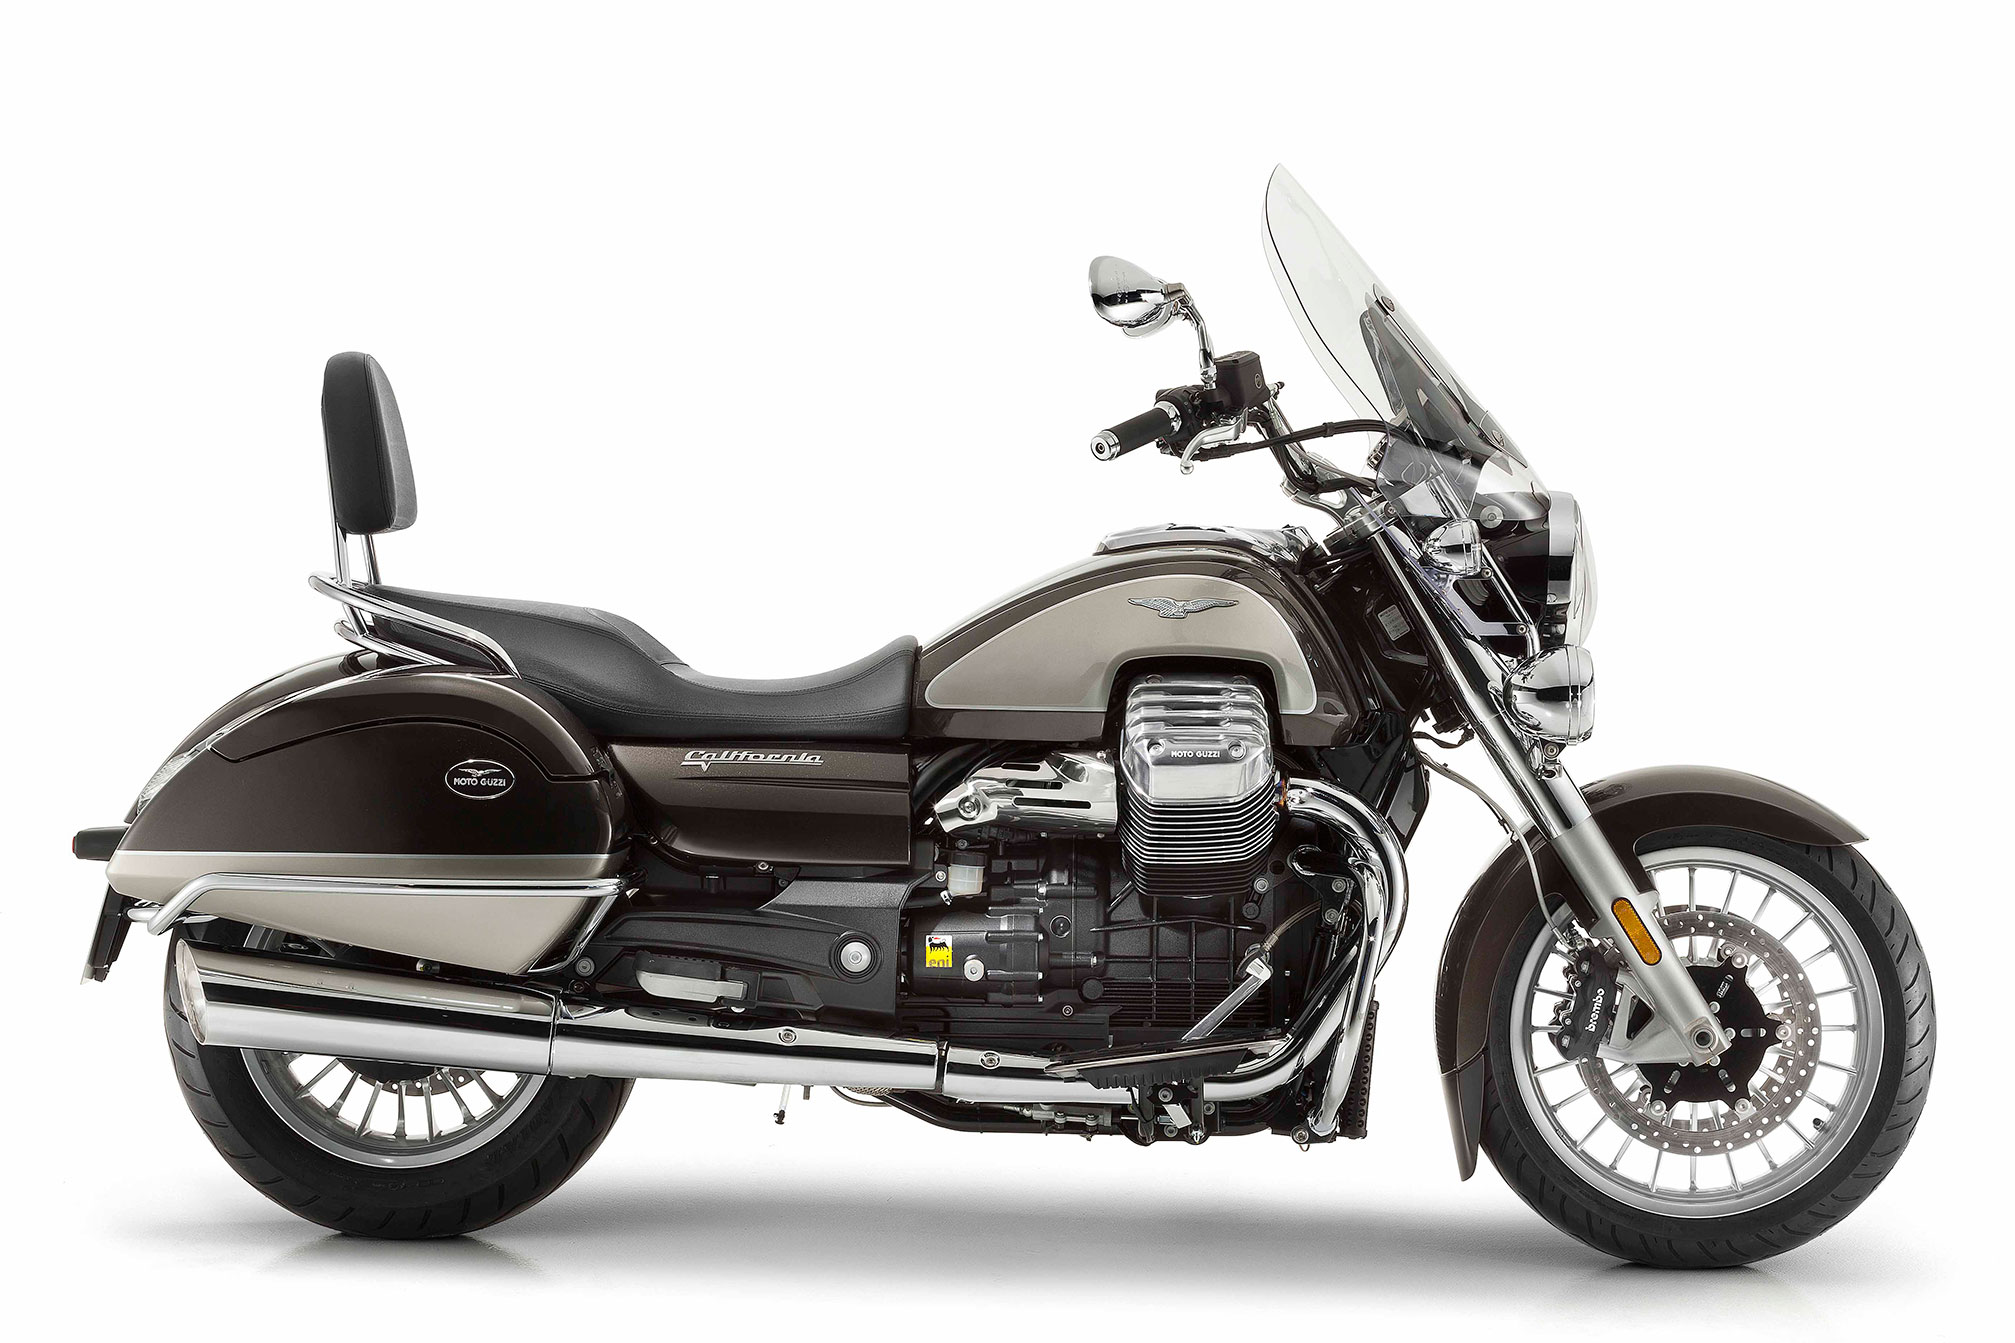 2015 moto guzzi california 1400 touring s e review. Black Bedroom Furniture Sets. Home Design Ideas